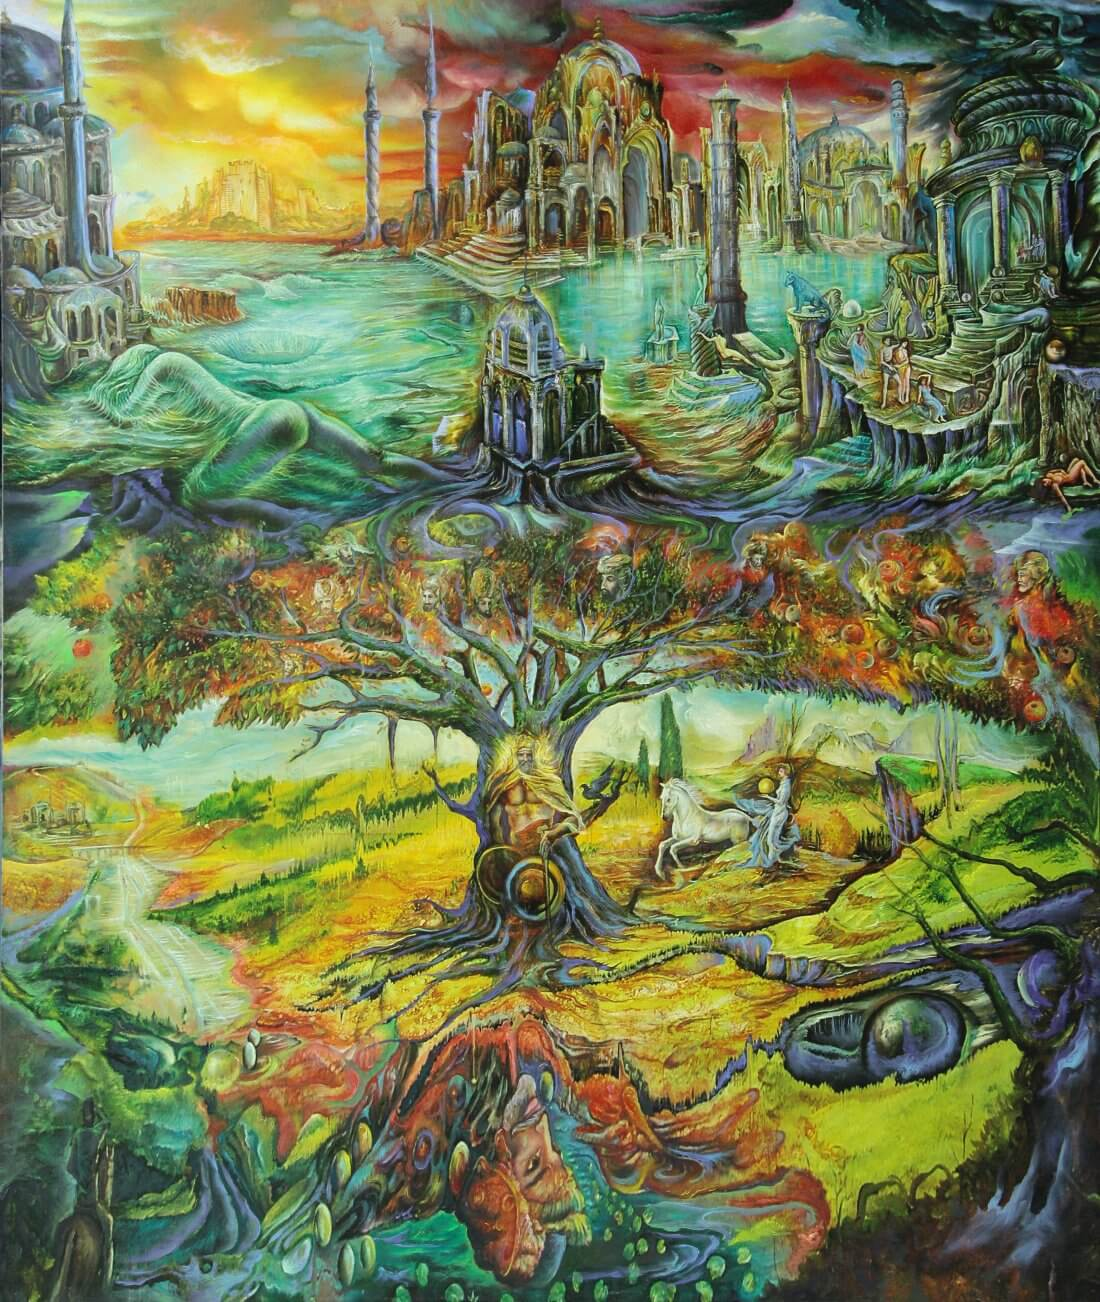 THE DREAM OF OSMAN GAZI, 2011Oil on Canvas100 x 1200 mm (app 39 x 47 inch)